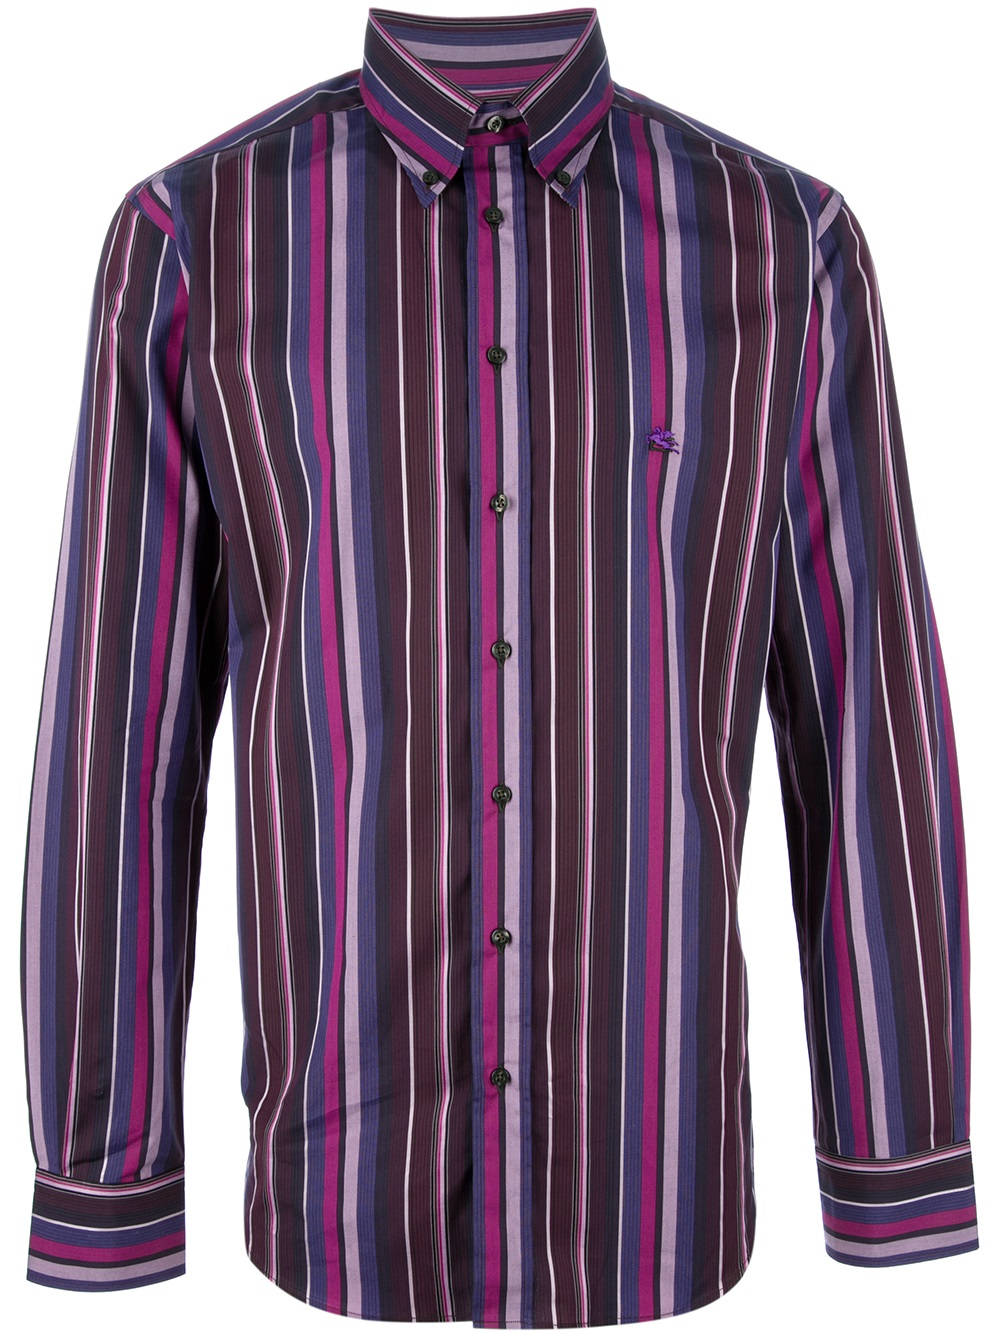 Etro striped shirt in purple for men lyst for Purple and black striped t shirt